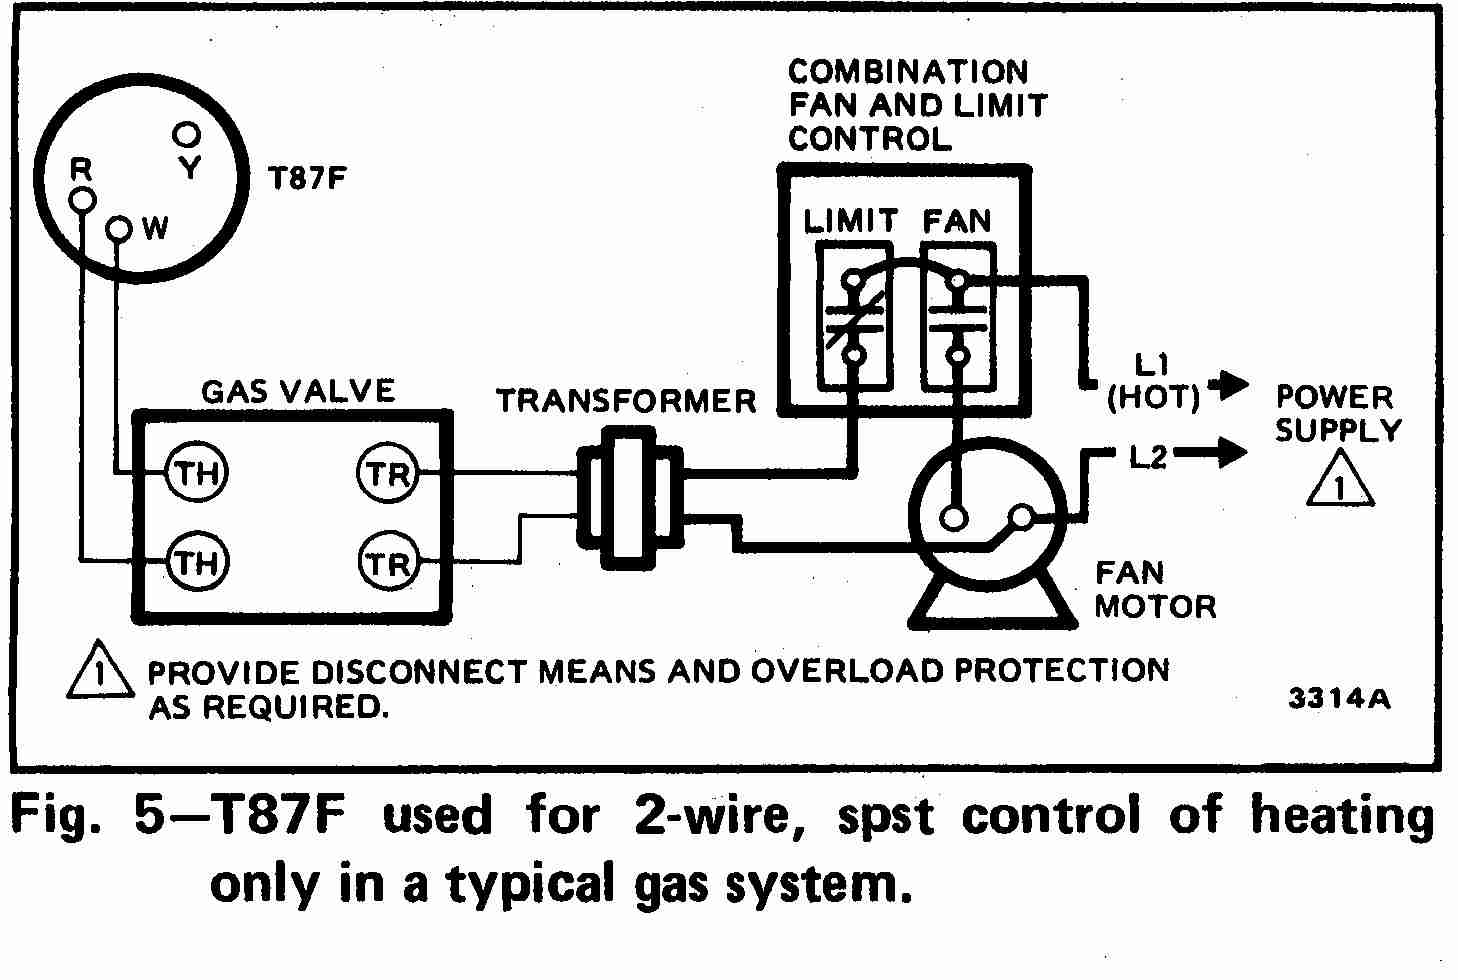 goodman electric furnace wiring diagram with Thermostat Wiring Instructions on E1eh012h Nordyne Electric Furnace Parts in addition Wesco Furnace Wiring in addition Boat Led Wiring Diagram in addition Testing Flame Sensor additionally Thermostat Wiring Instructions.